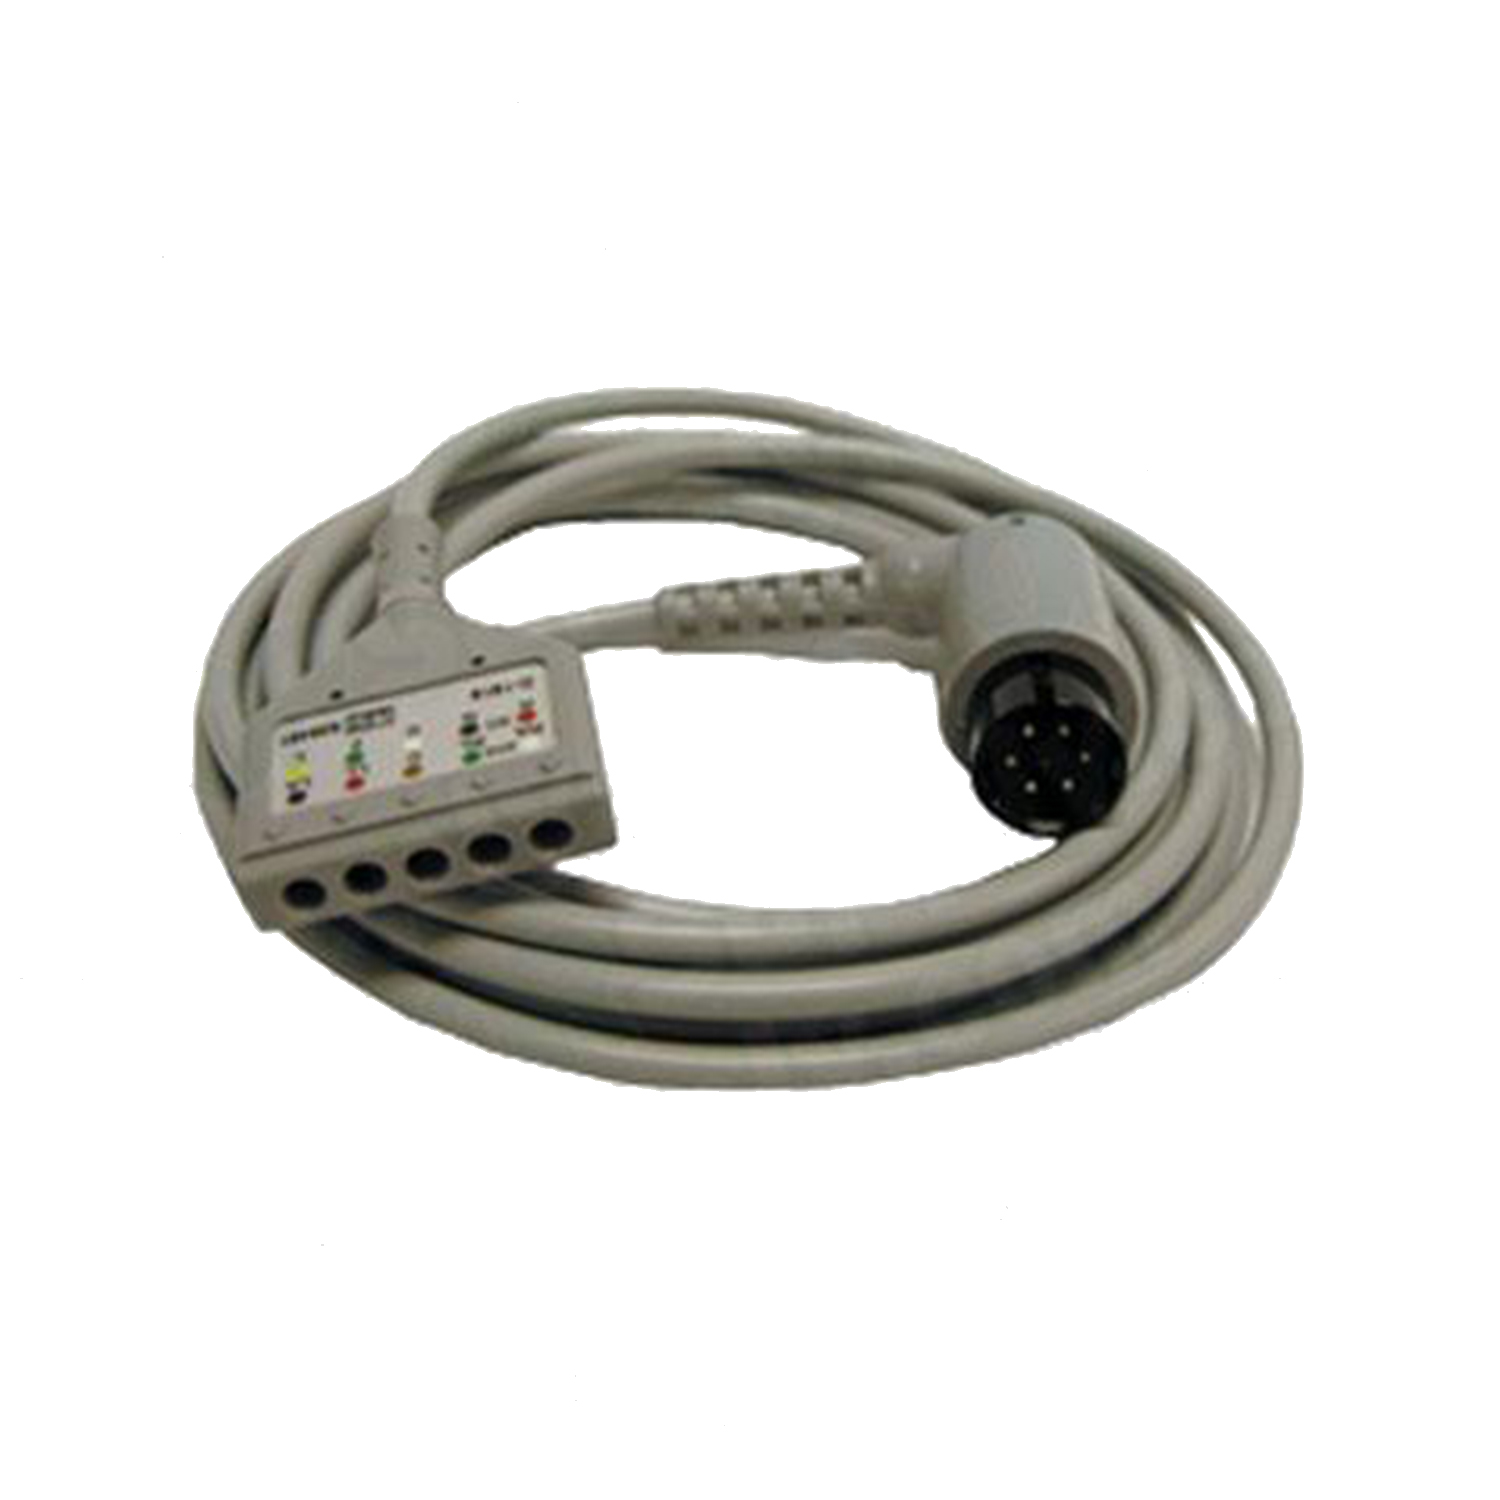 5-Lead Patient Cable for Datascope Machines